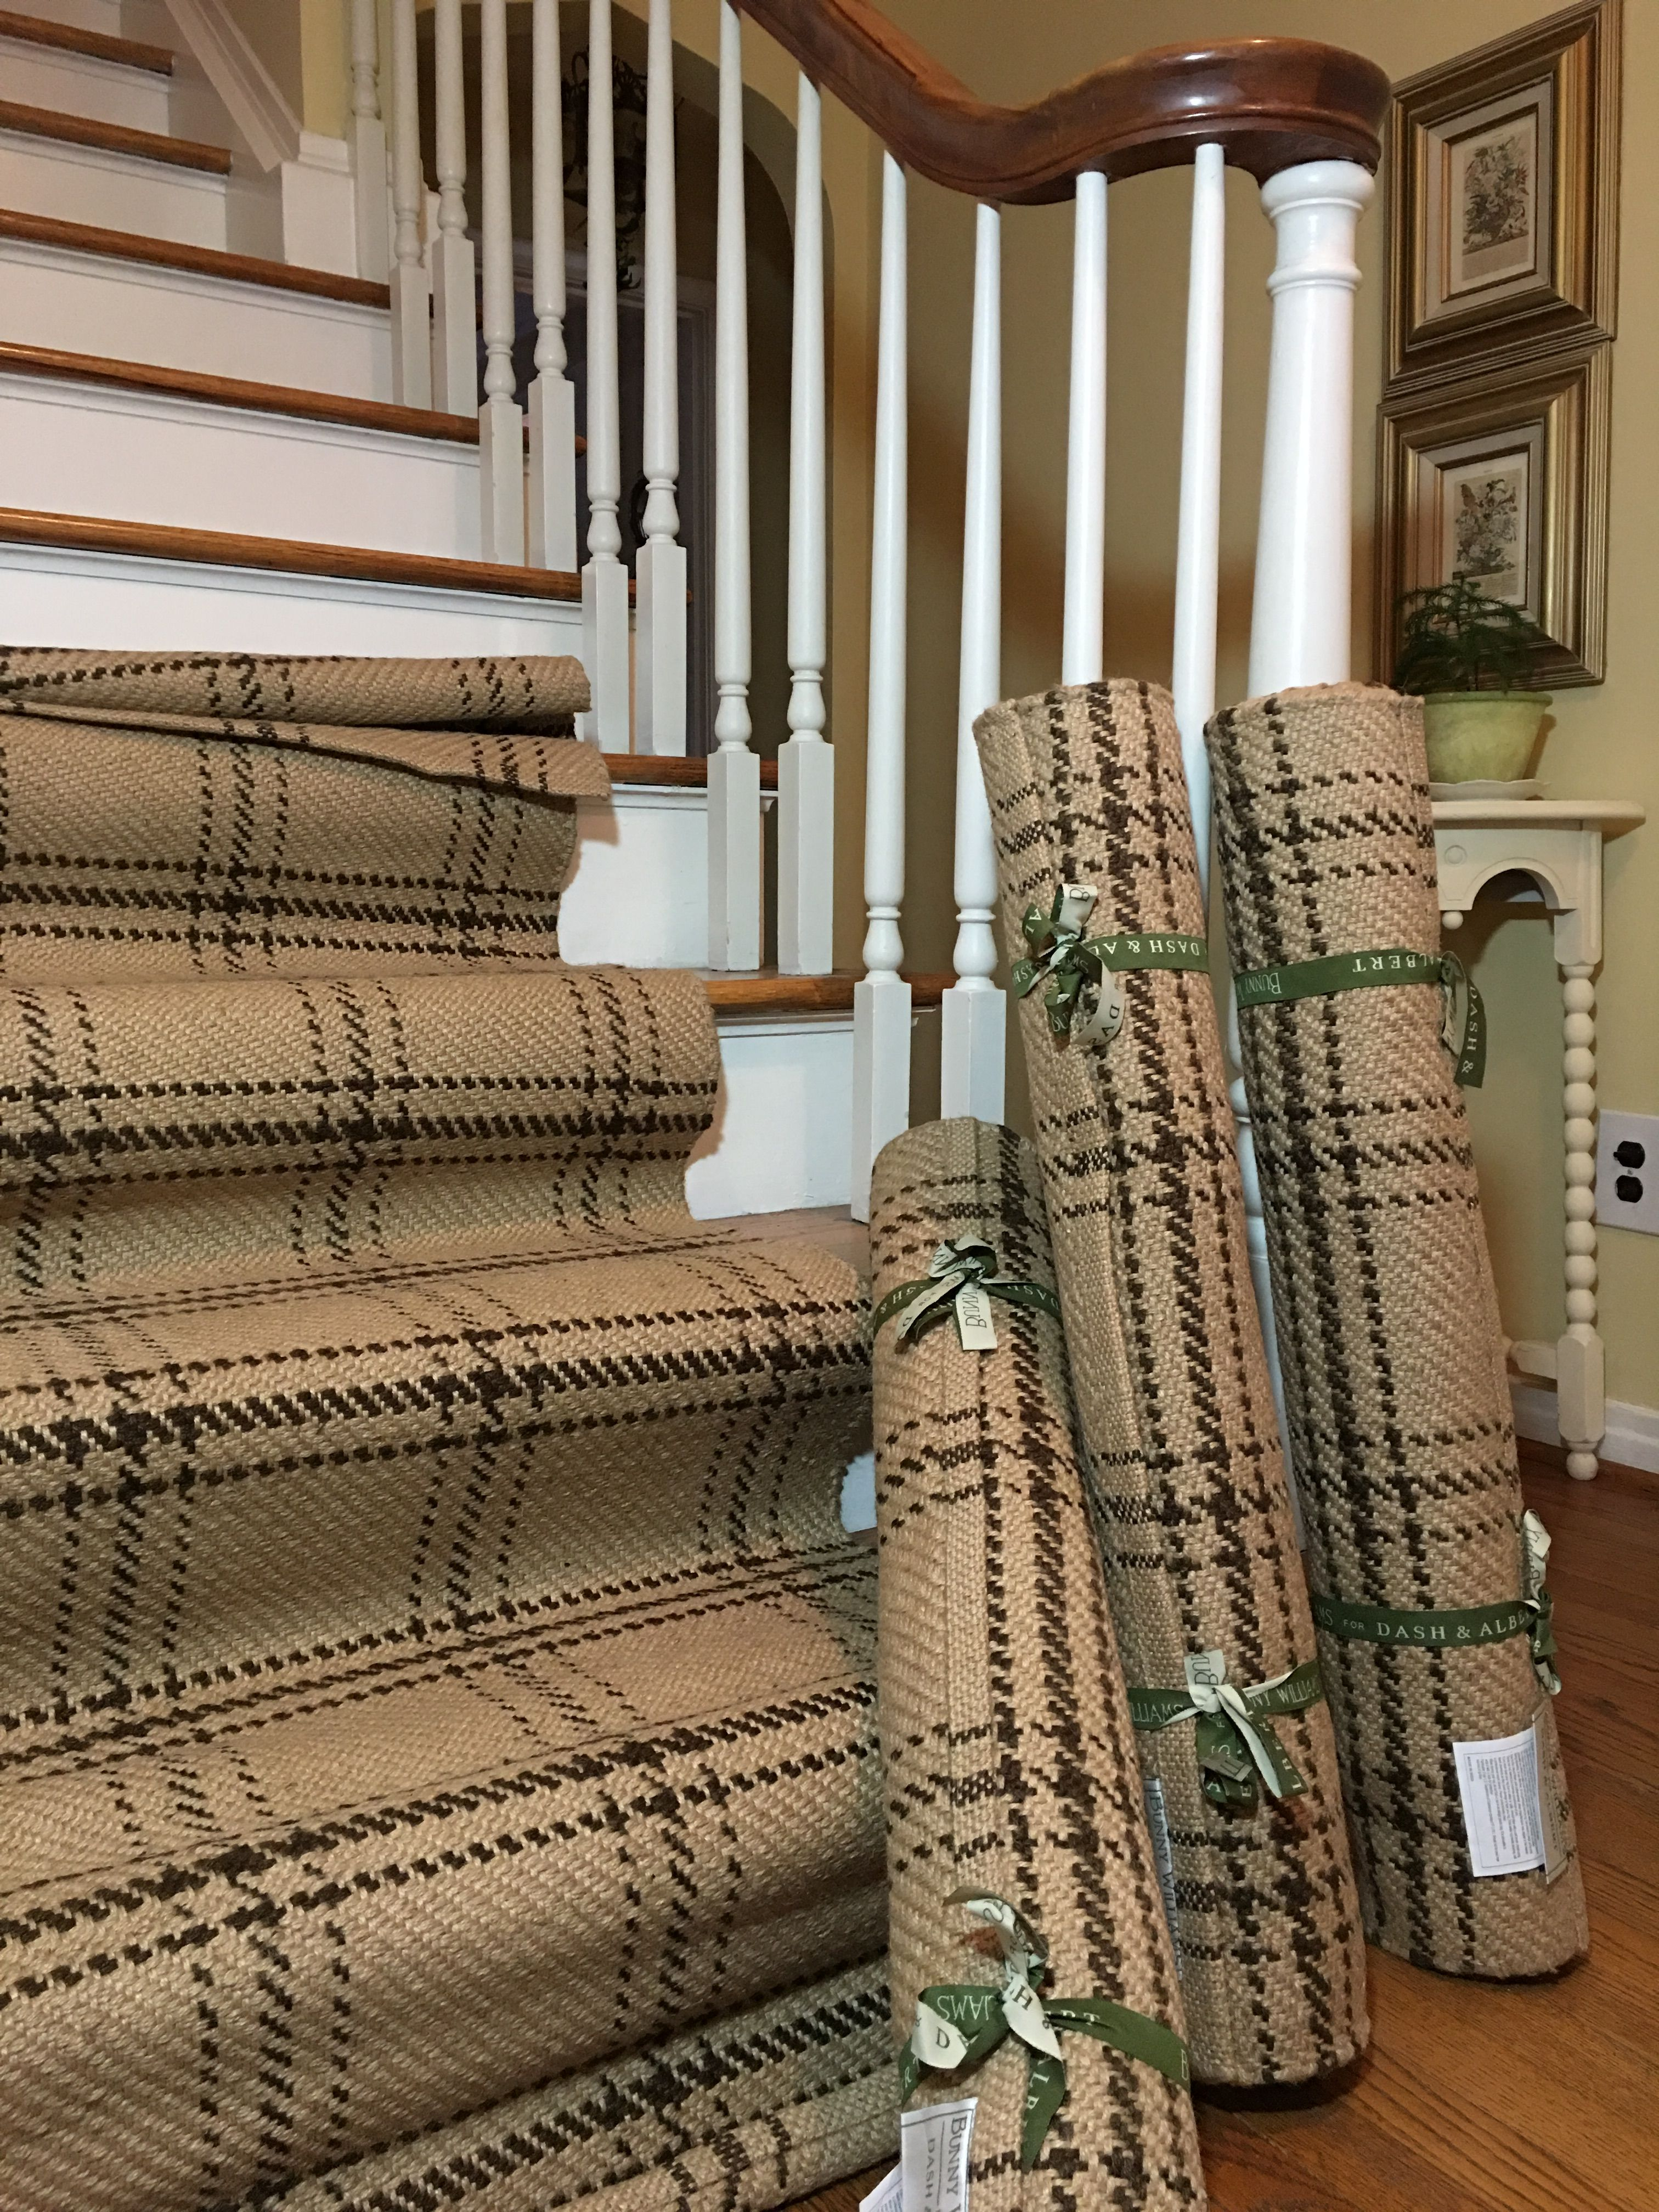 Stairs Rug Runners Dash And Albert Plaid Jute Stair Runner By Bunny Williams For